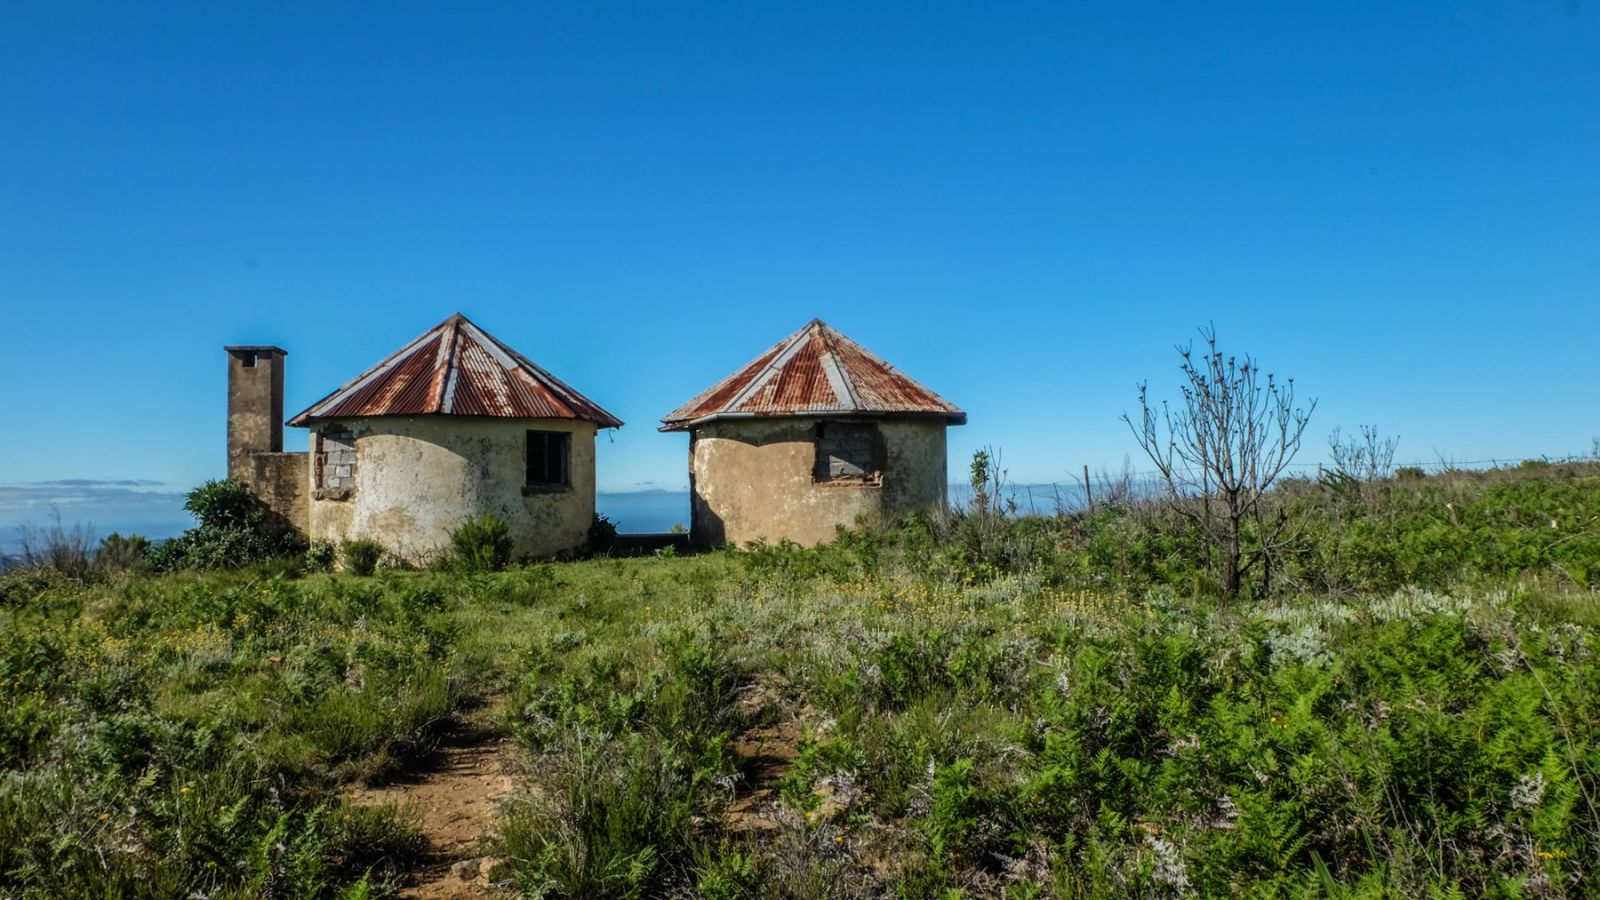 a photo of ancient cata huts on the amathole trail in south africa.